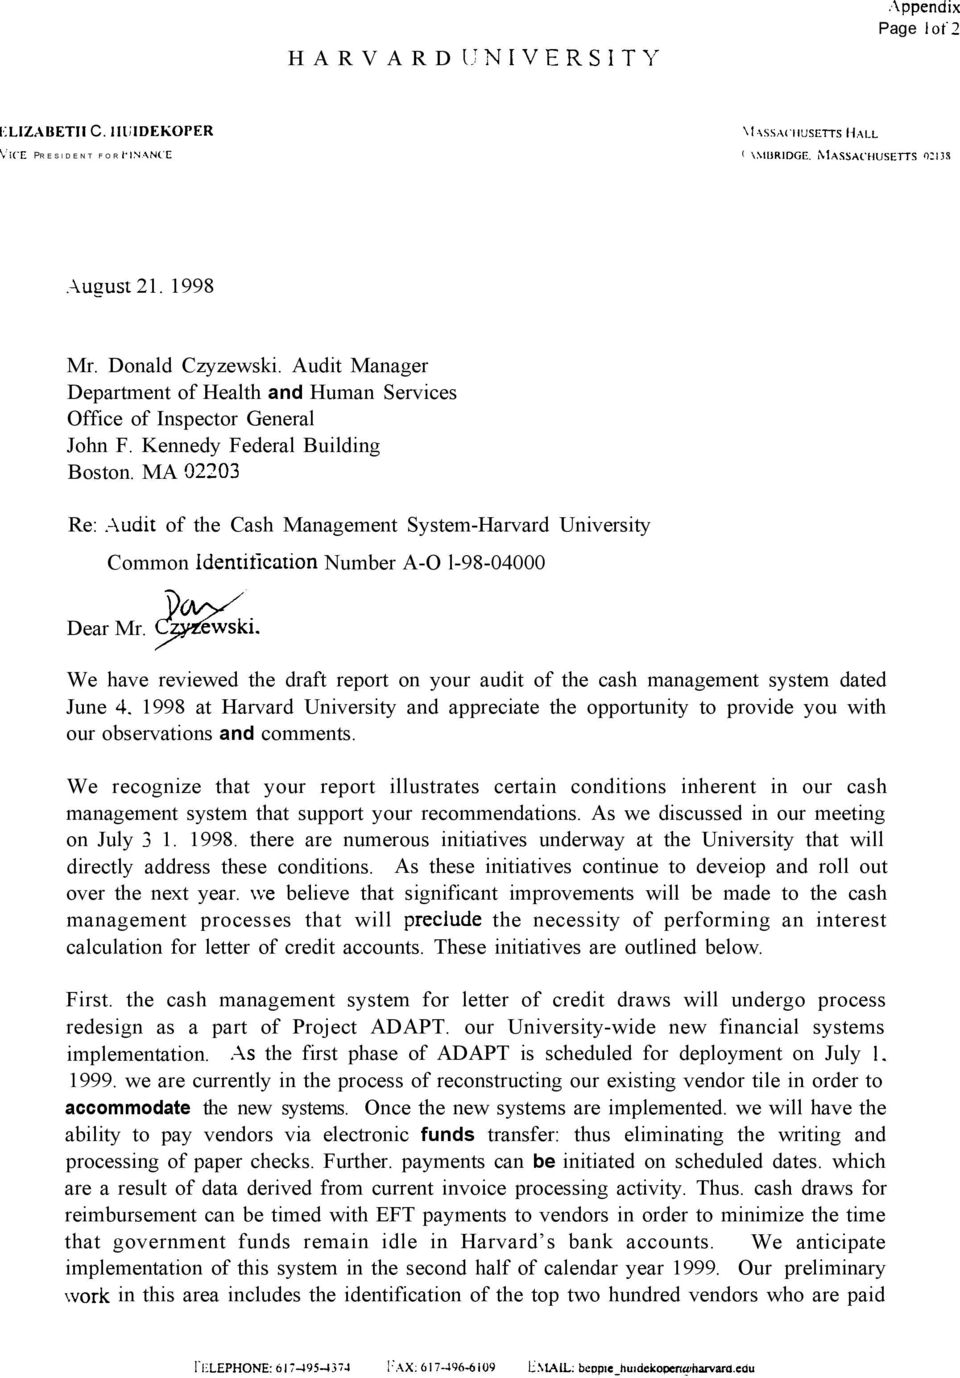 We have reviewed the draft report on your audit of the cash management system dated June 1998 at Harvard University and appreciate the opportunity to provide you with our observations and comments.